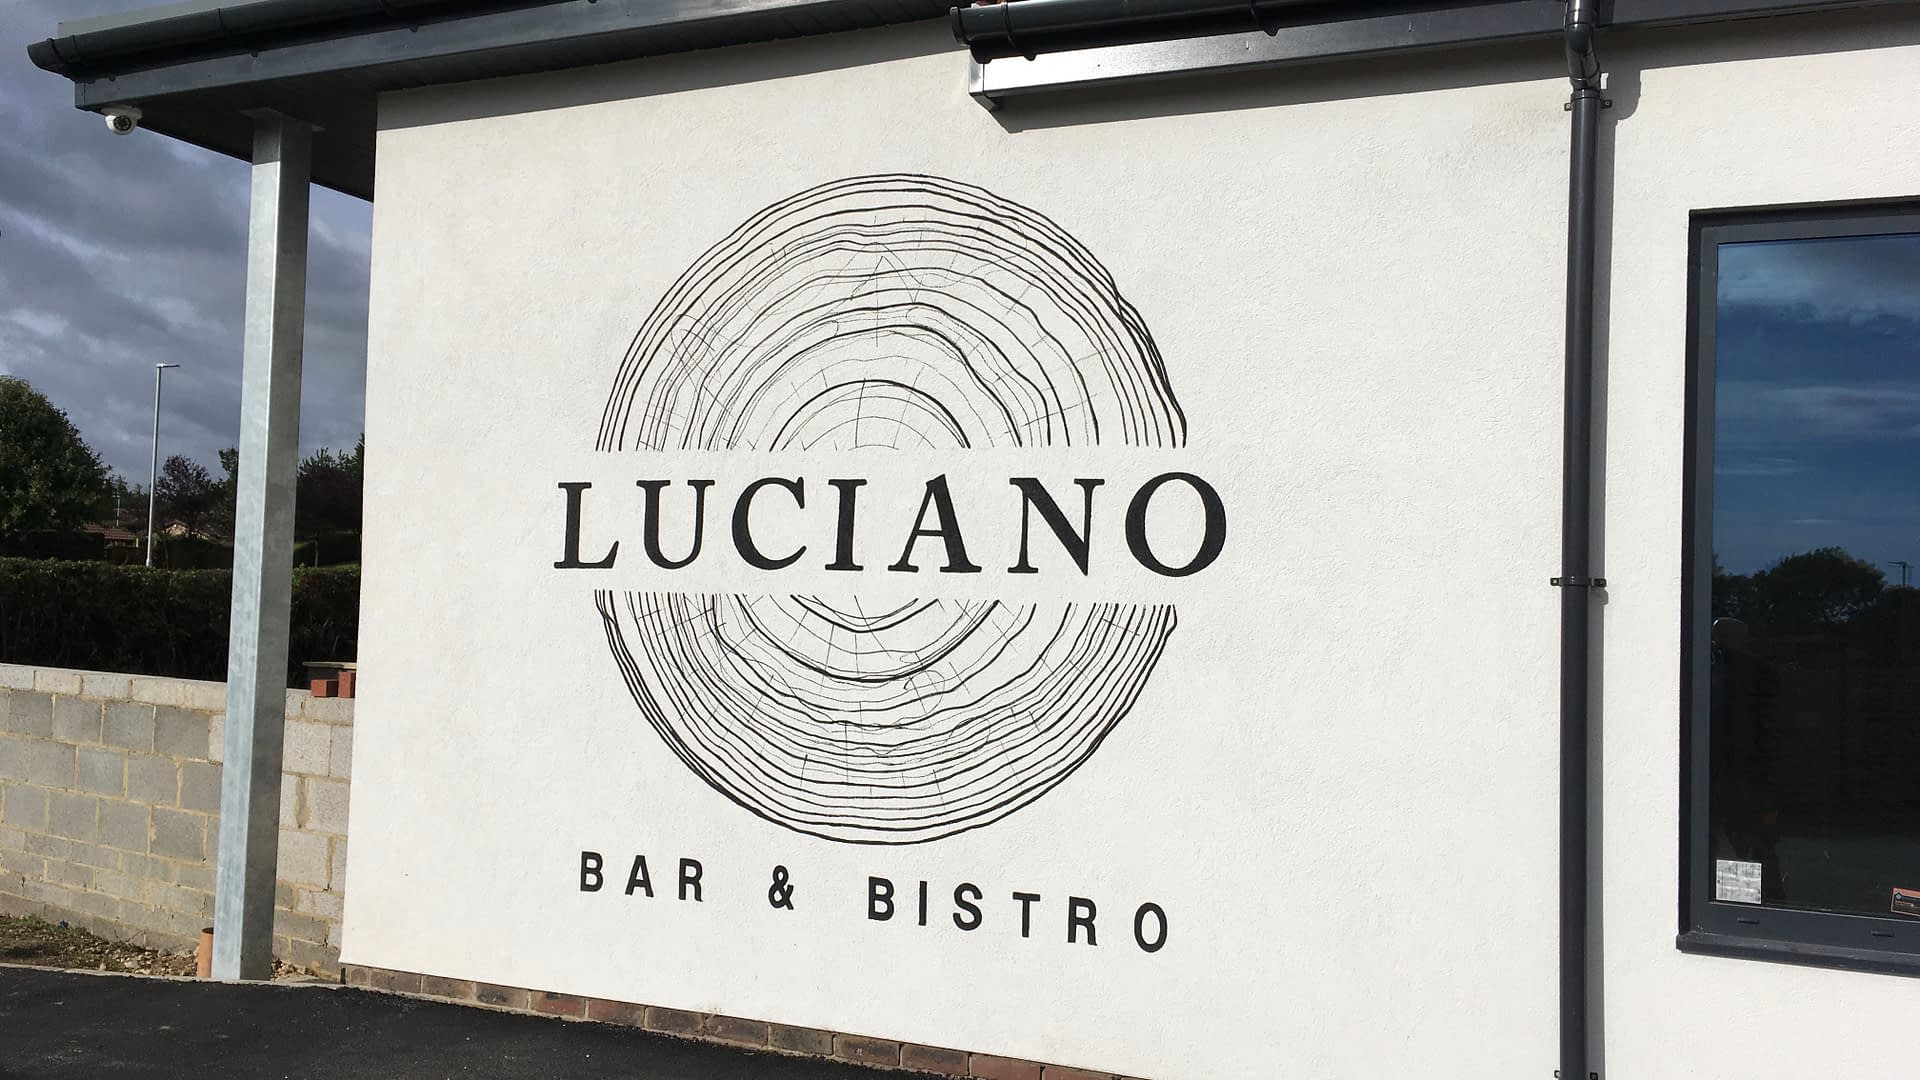 Luciano Bar and bistro